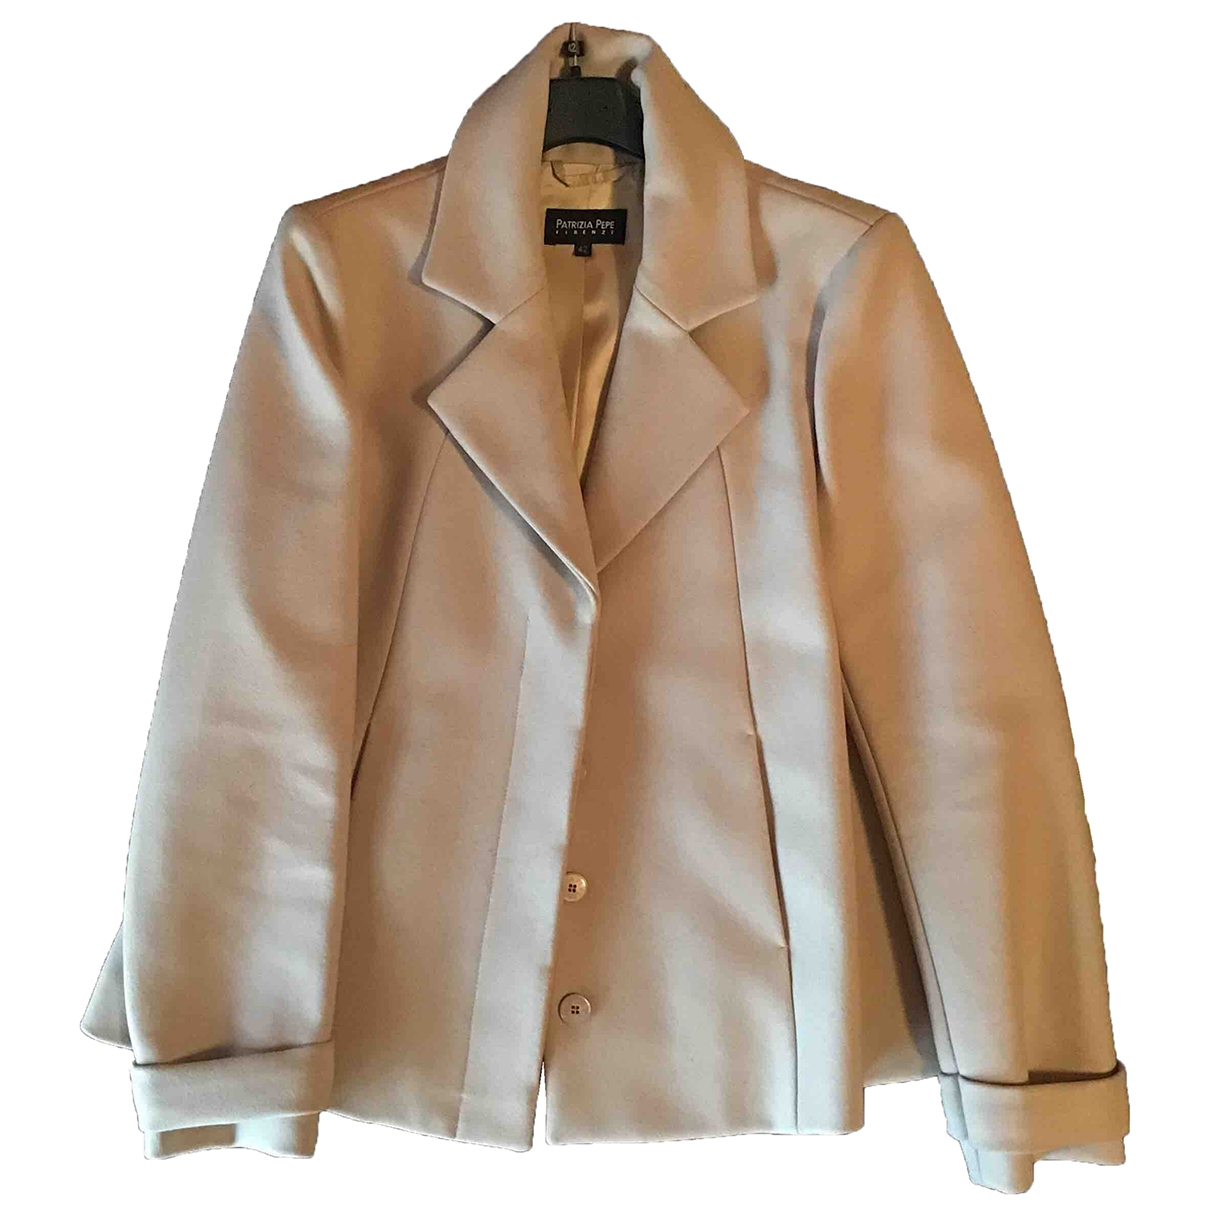 Patrizia Pepe \N Beige Wool jacket for Women 42 IT